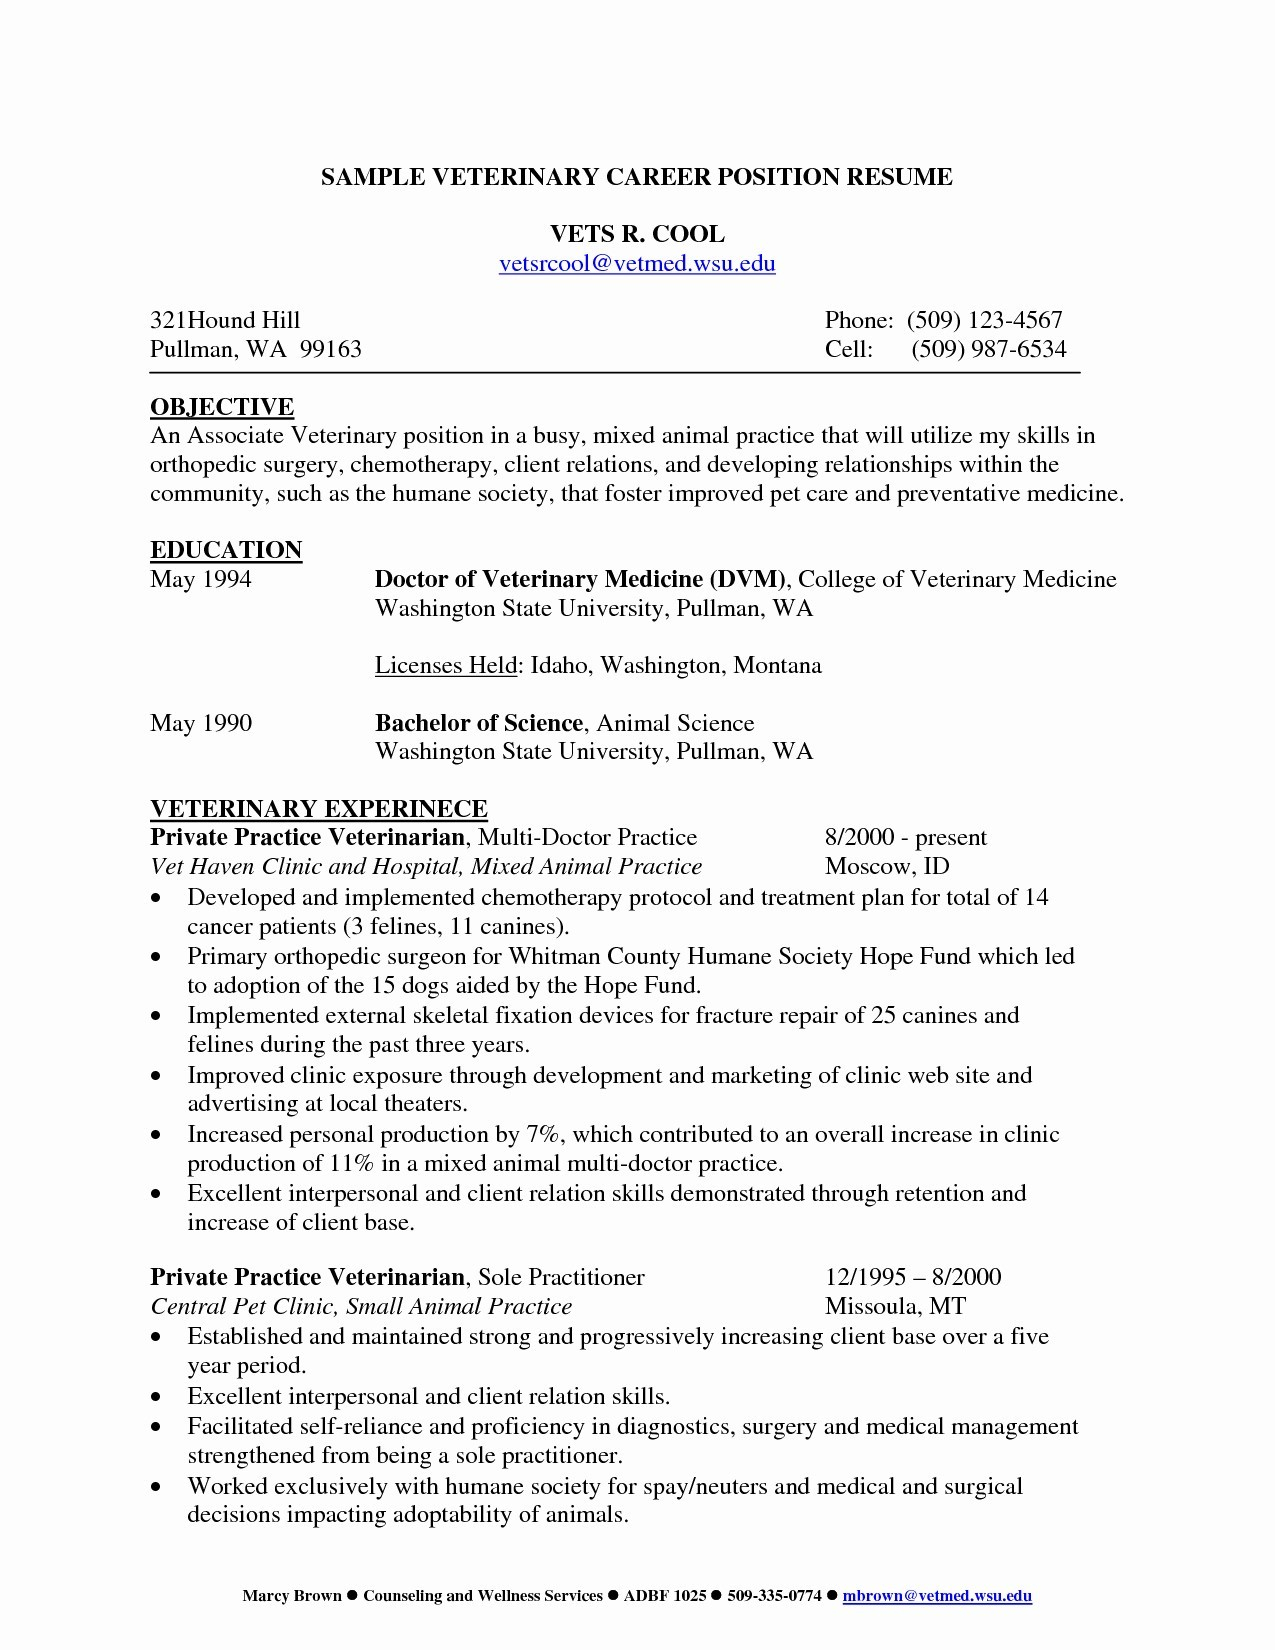 Resume for Pharmacy Technician - 25 Inspirational Pharmacy Tech Resume Sample